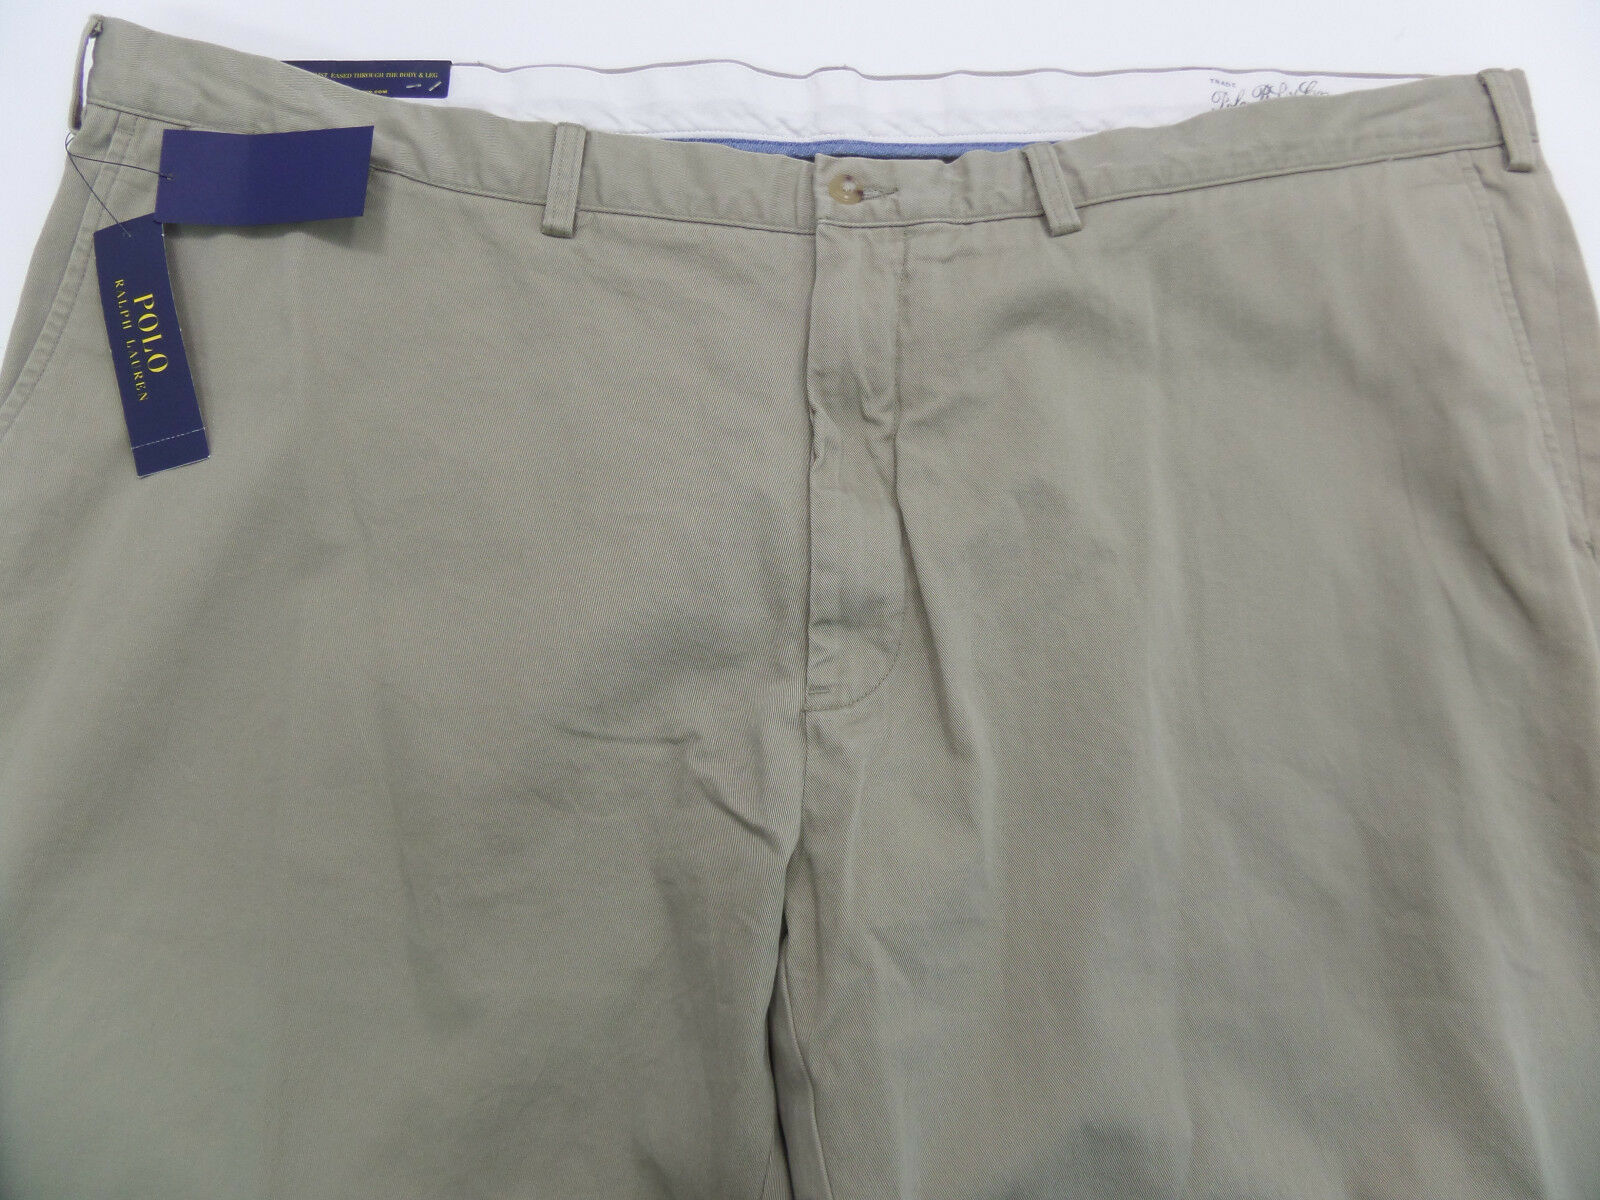 Polo Ralph Lauren Pants Khaki Classic Fit Men's Size 50 x 32